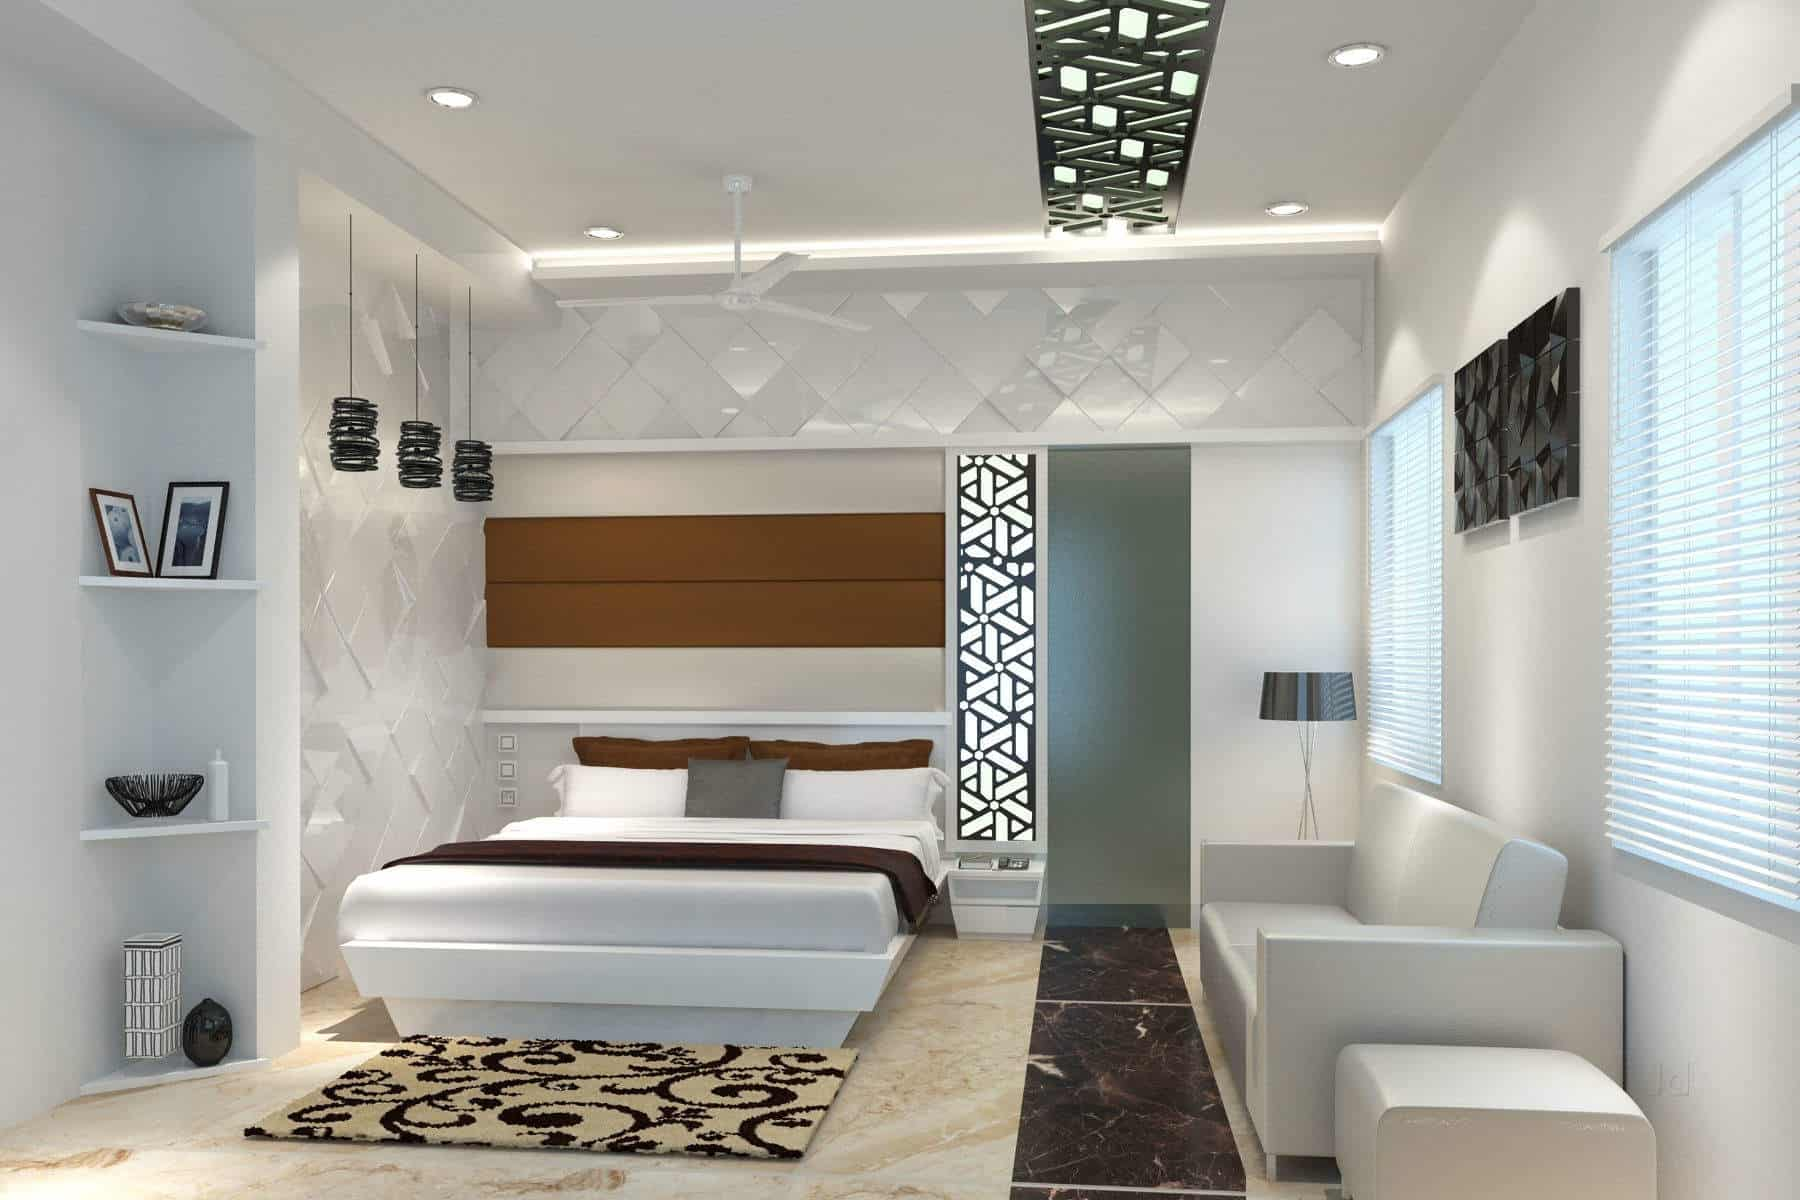 Craft Design 7 Photos Karwan Hyderabad Pictures Images Gallery